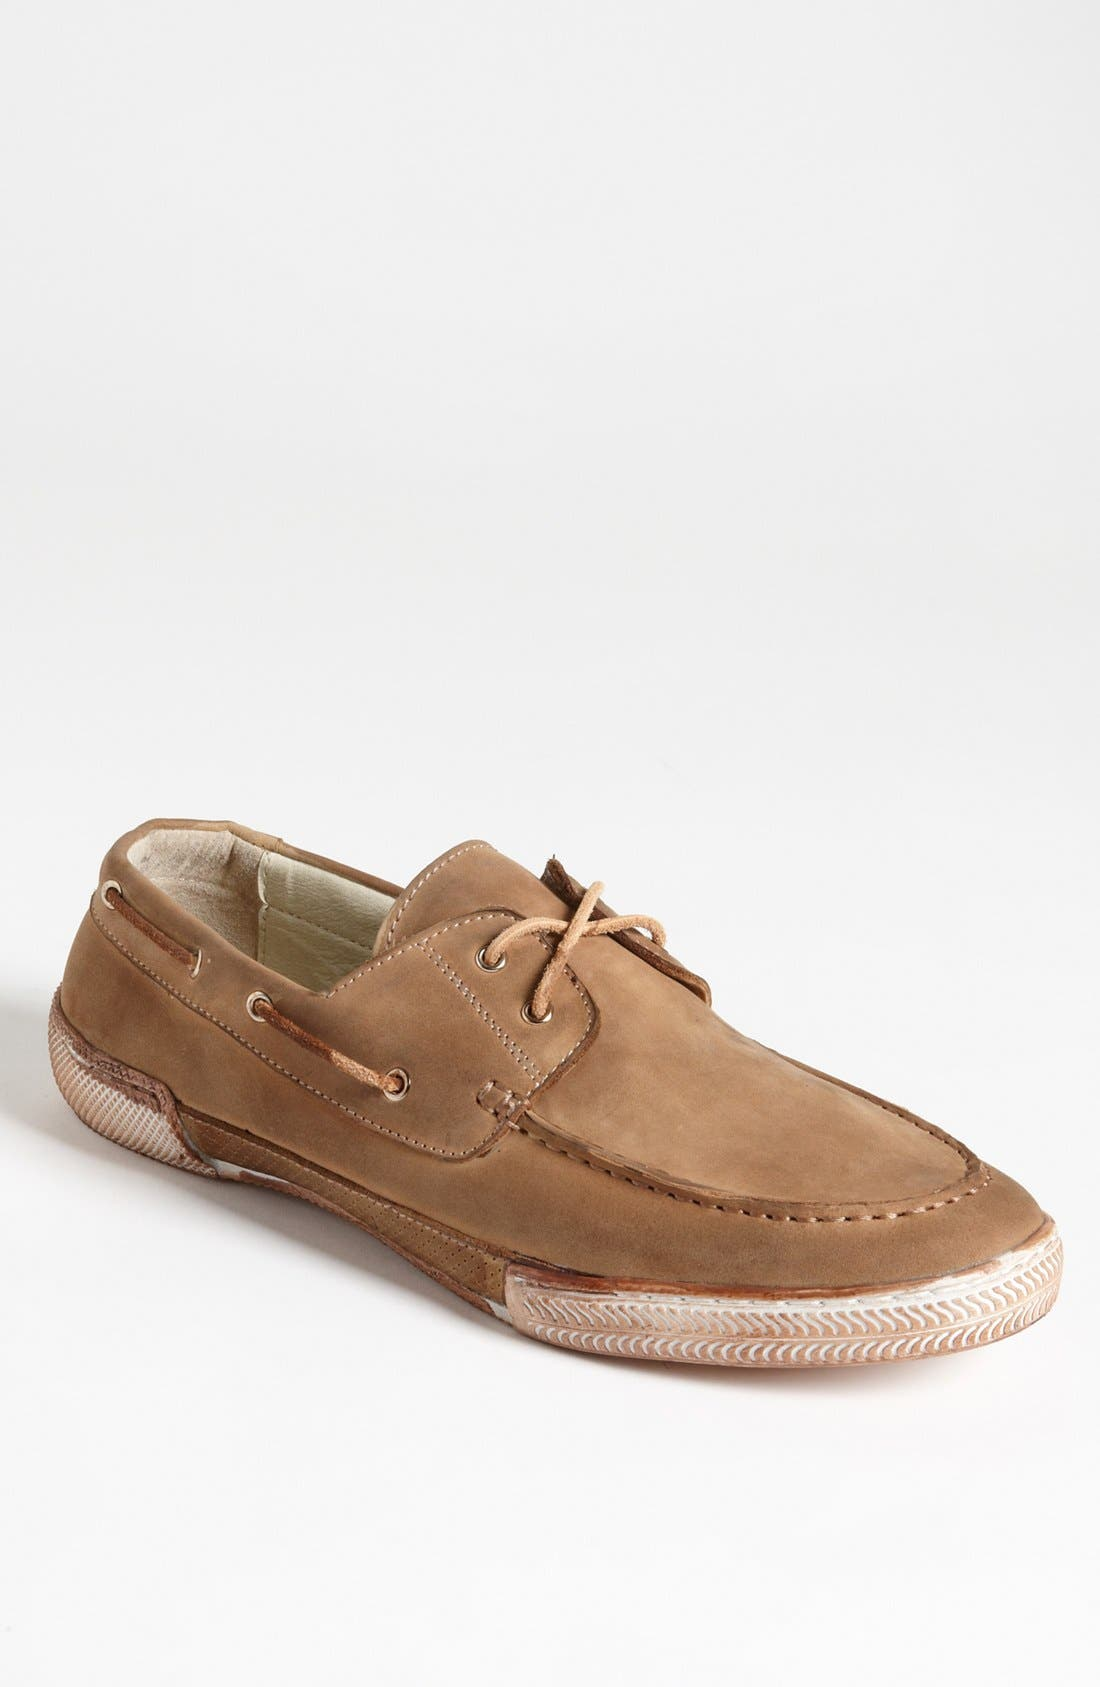 Alternate Image 1 Selected - Rogue 'Accused' Boat Shoe